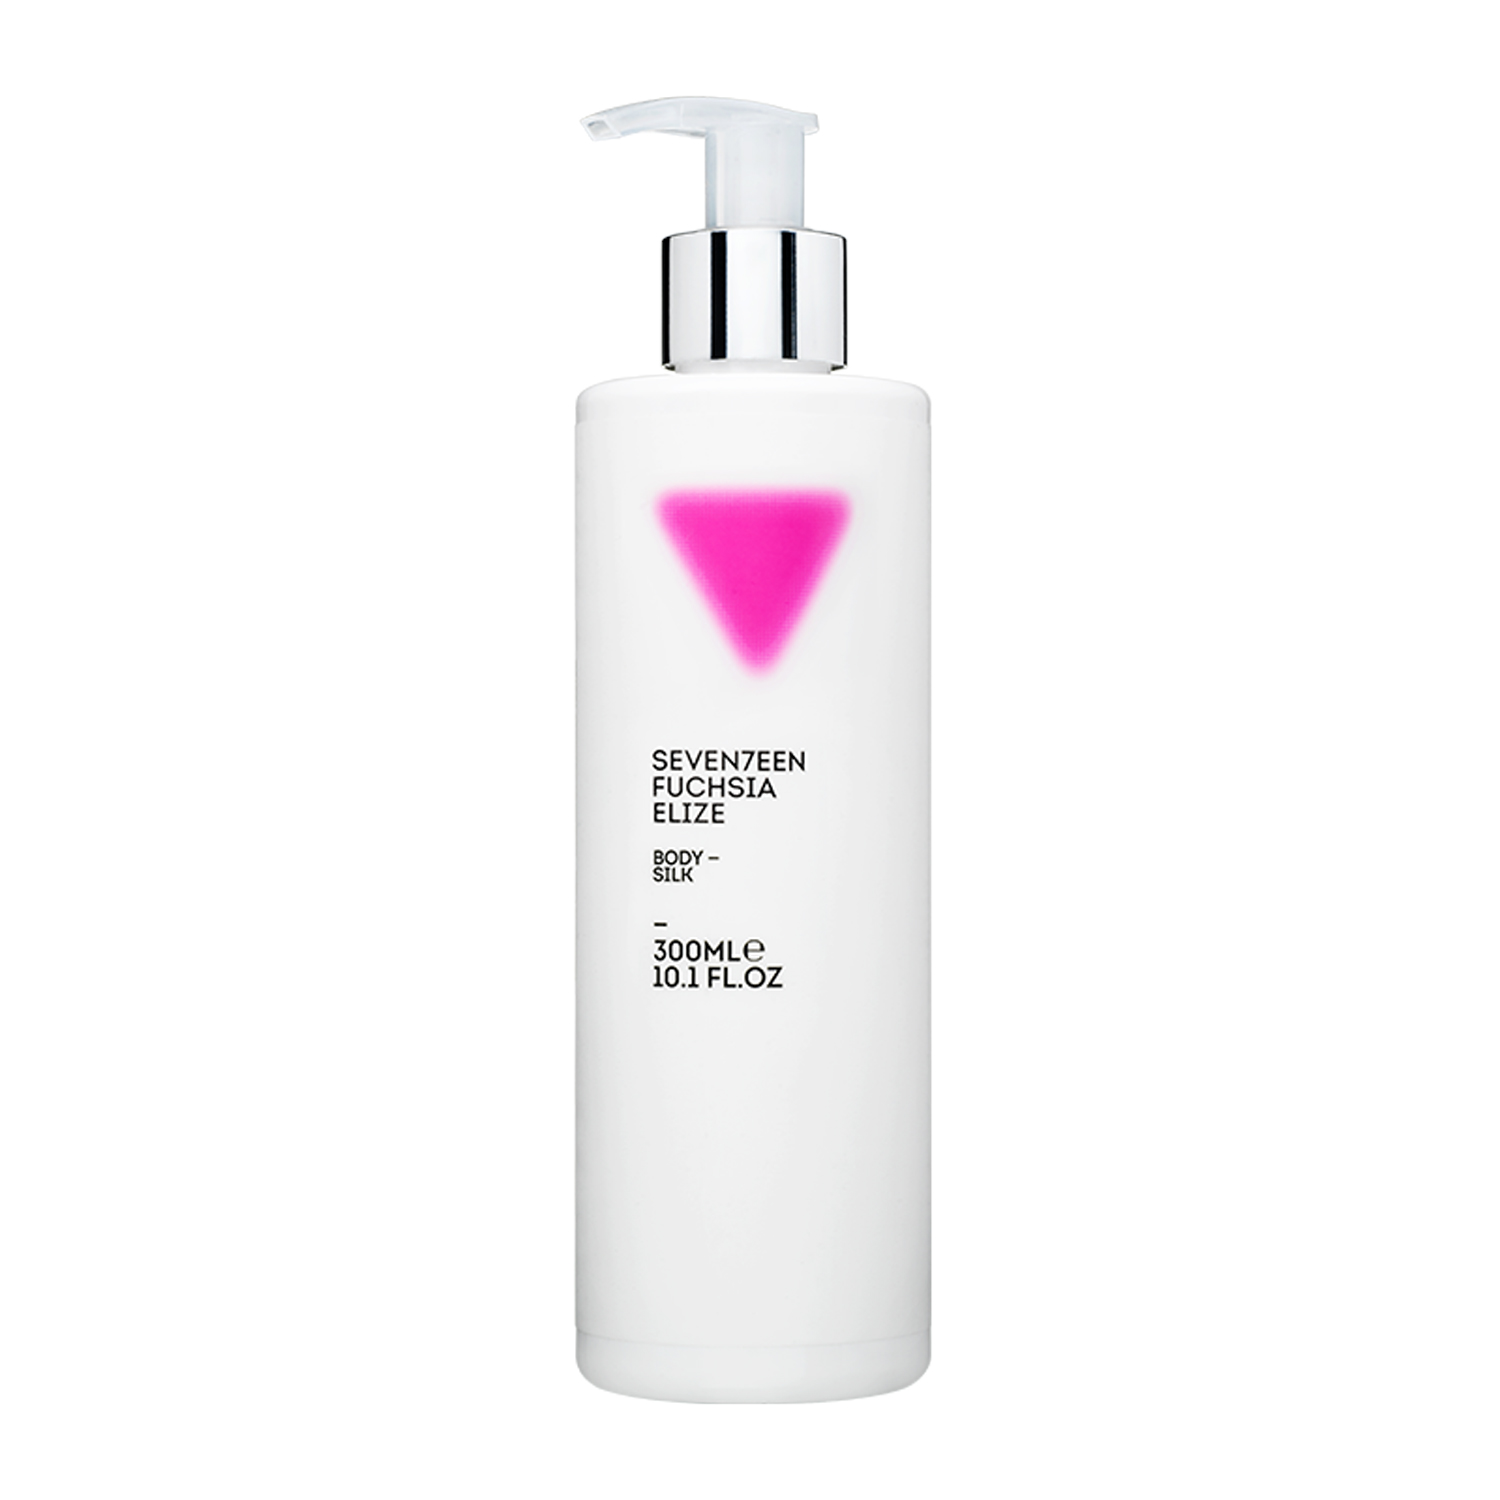 Fuchsia Elize Body Silk 300ml